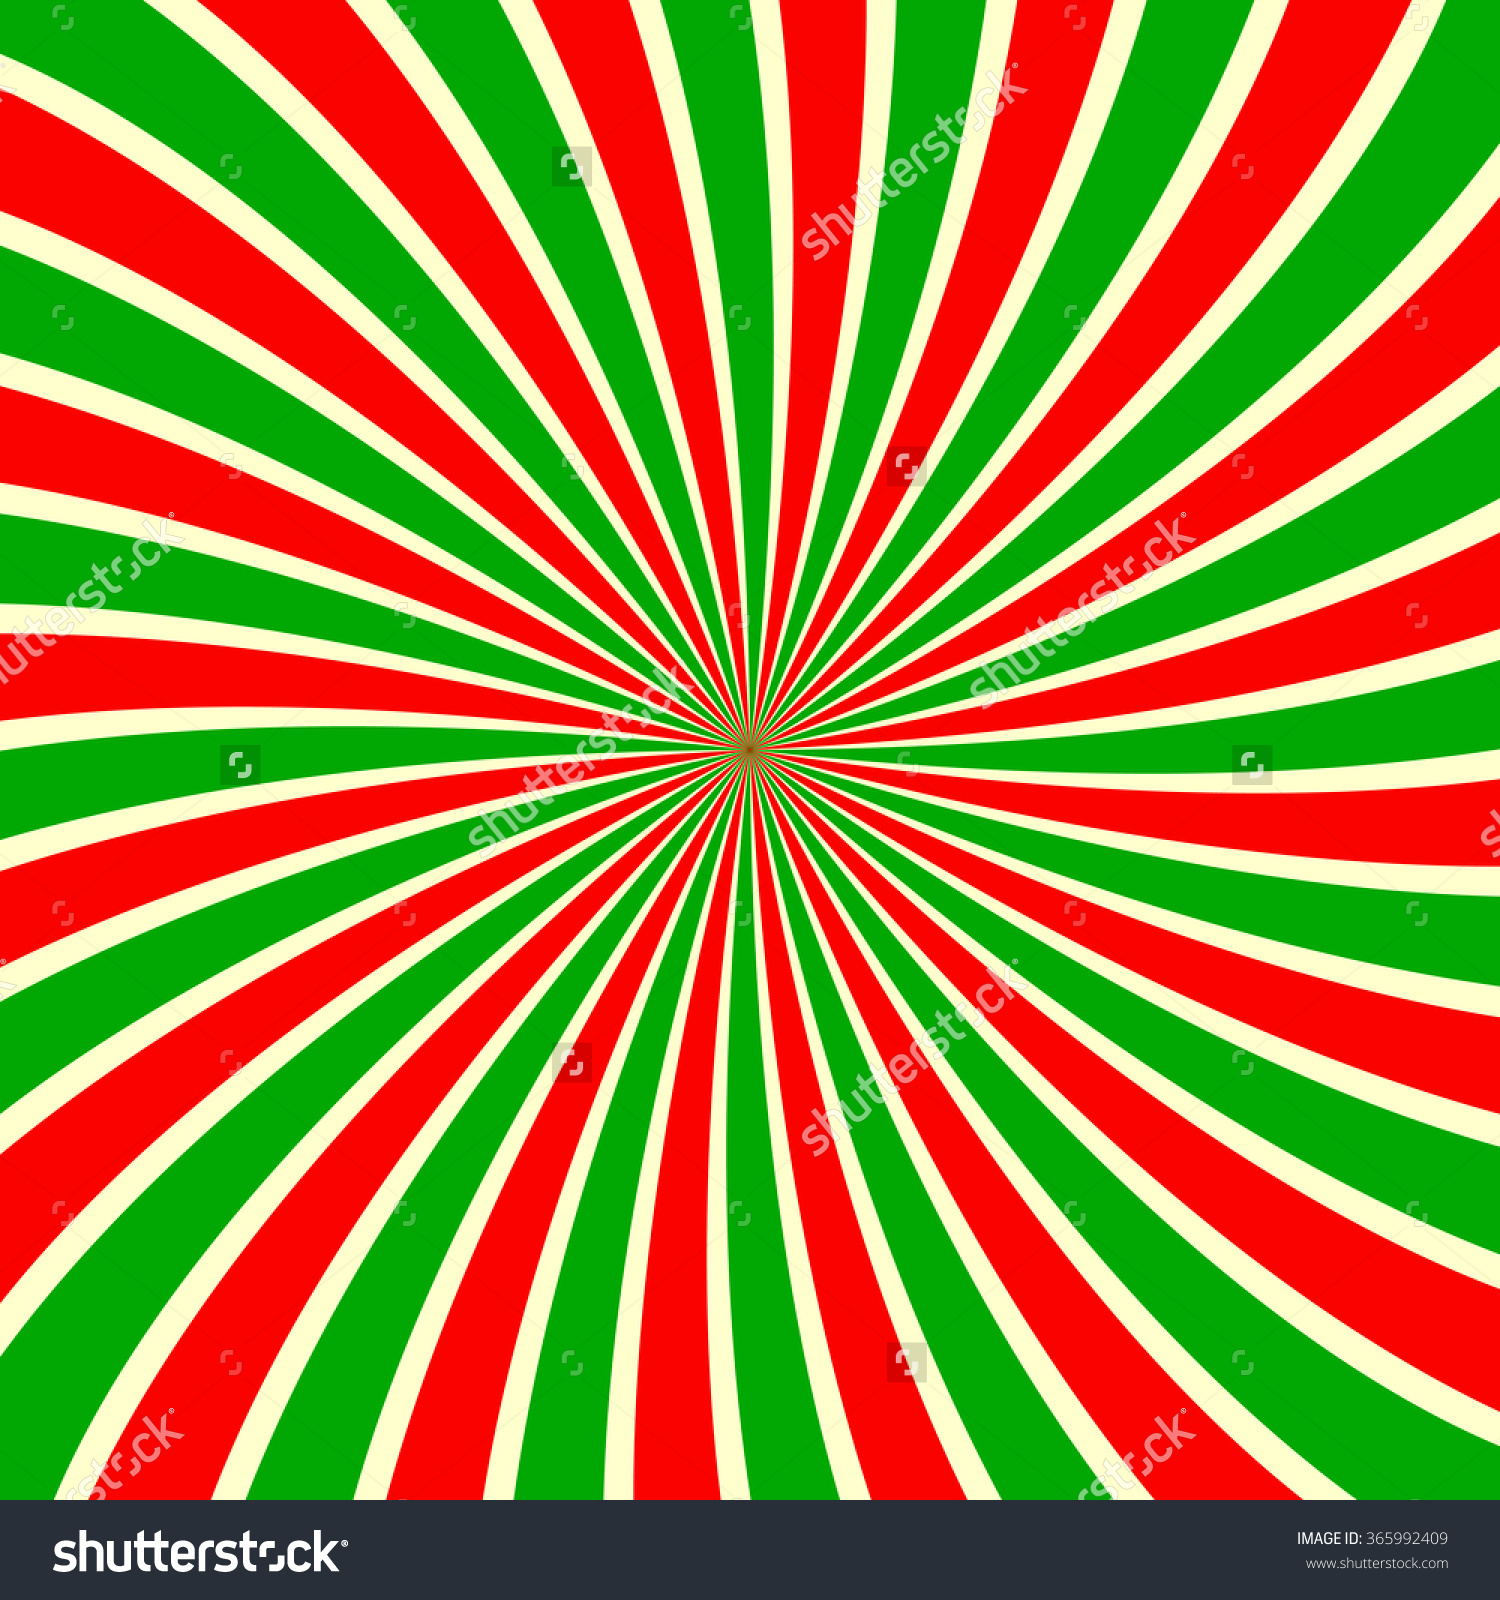 Free 3d Wallpaper And Screensavers Download Red And Green Striped Wallpaper Gallery